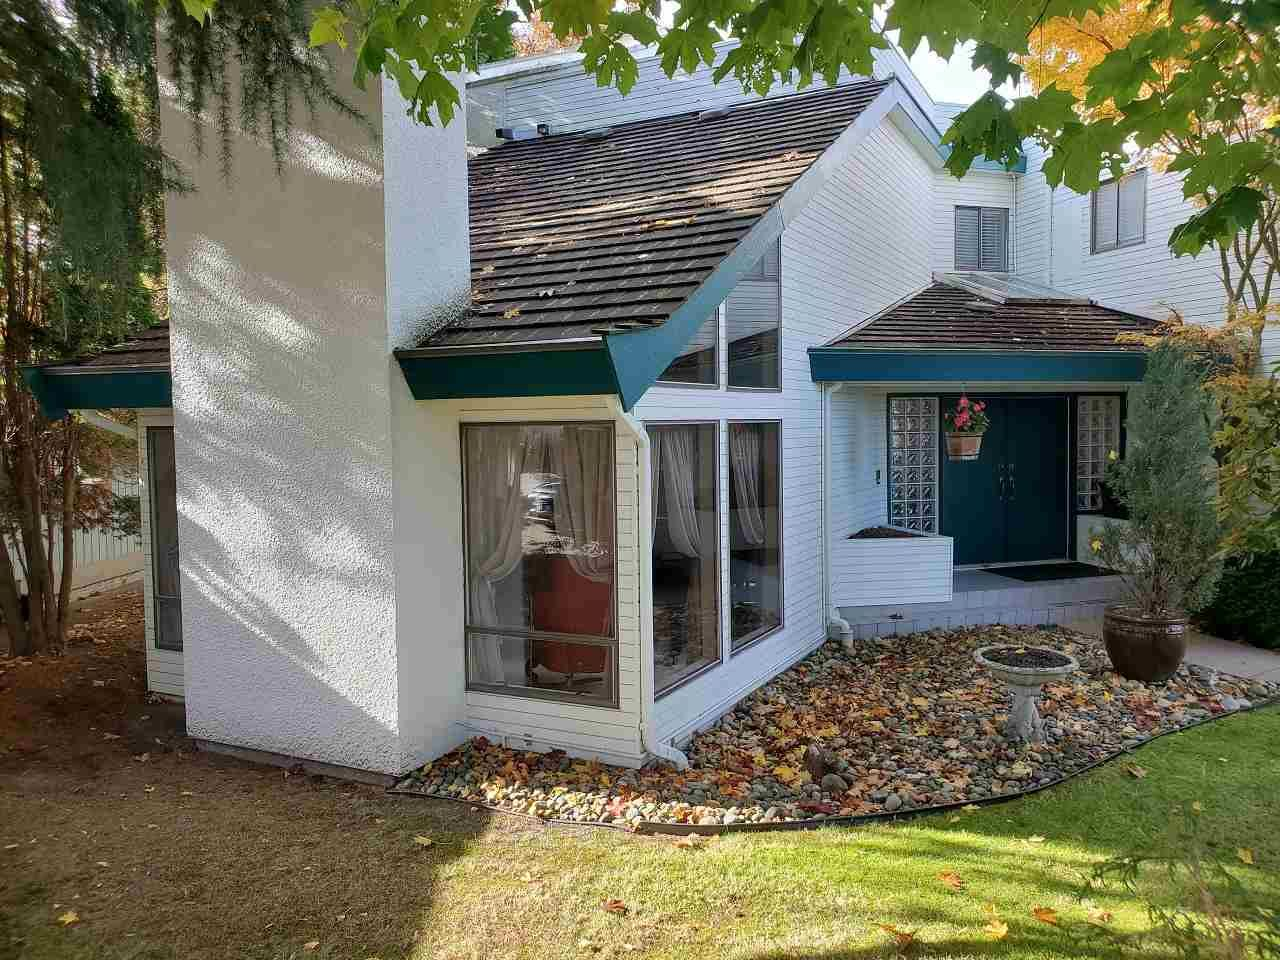 Main Photo: 7671 CHELSEA Road in Richmond: Granville House for sale : MLS®# R2515591